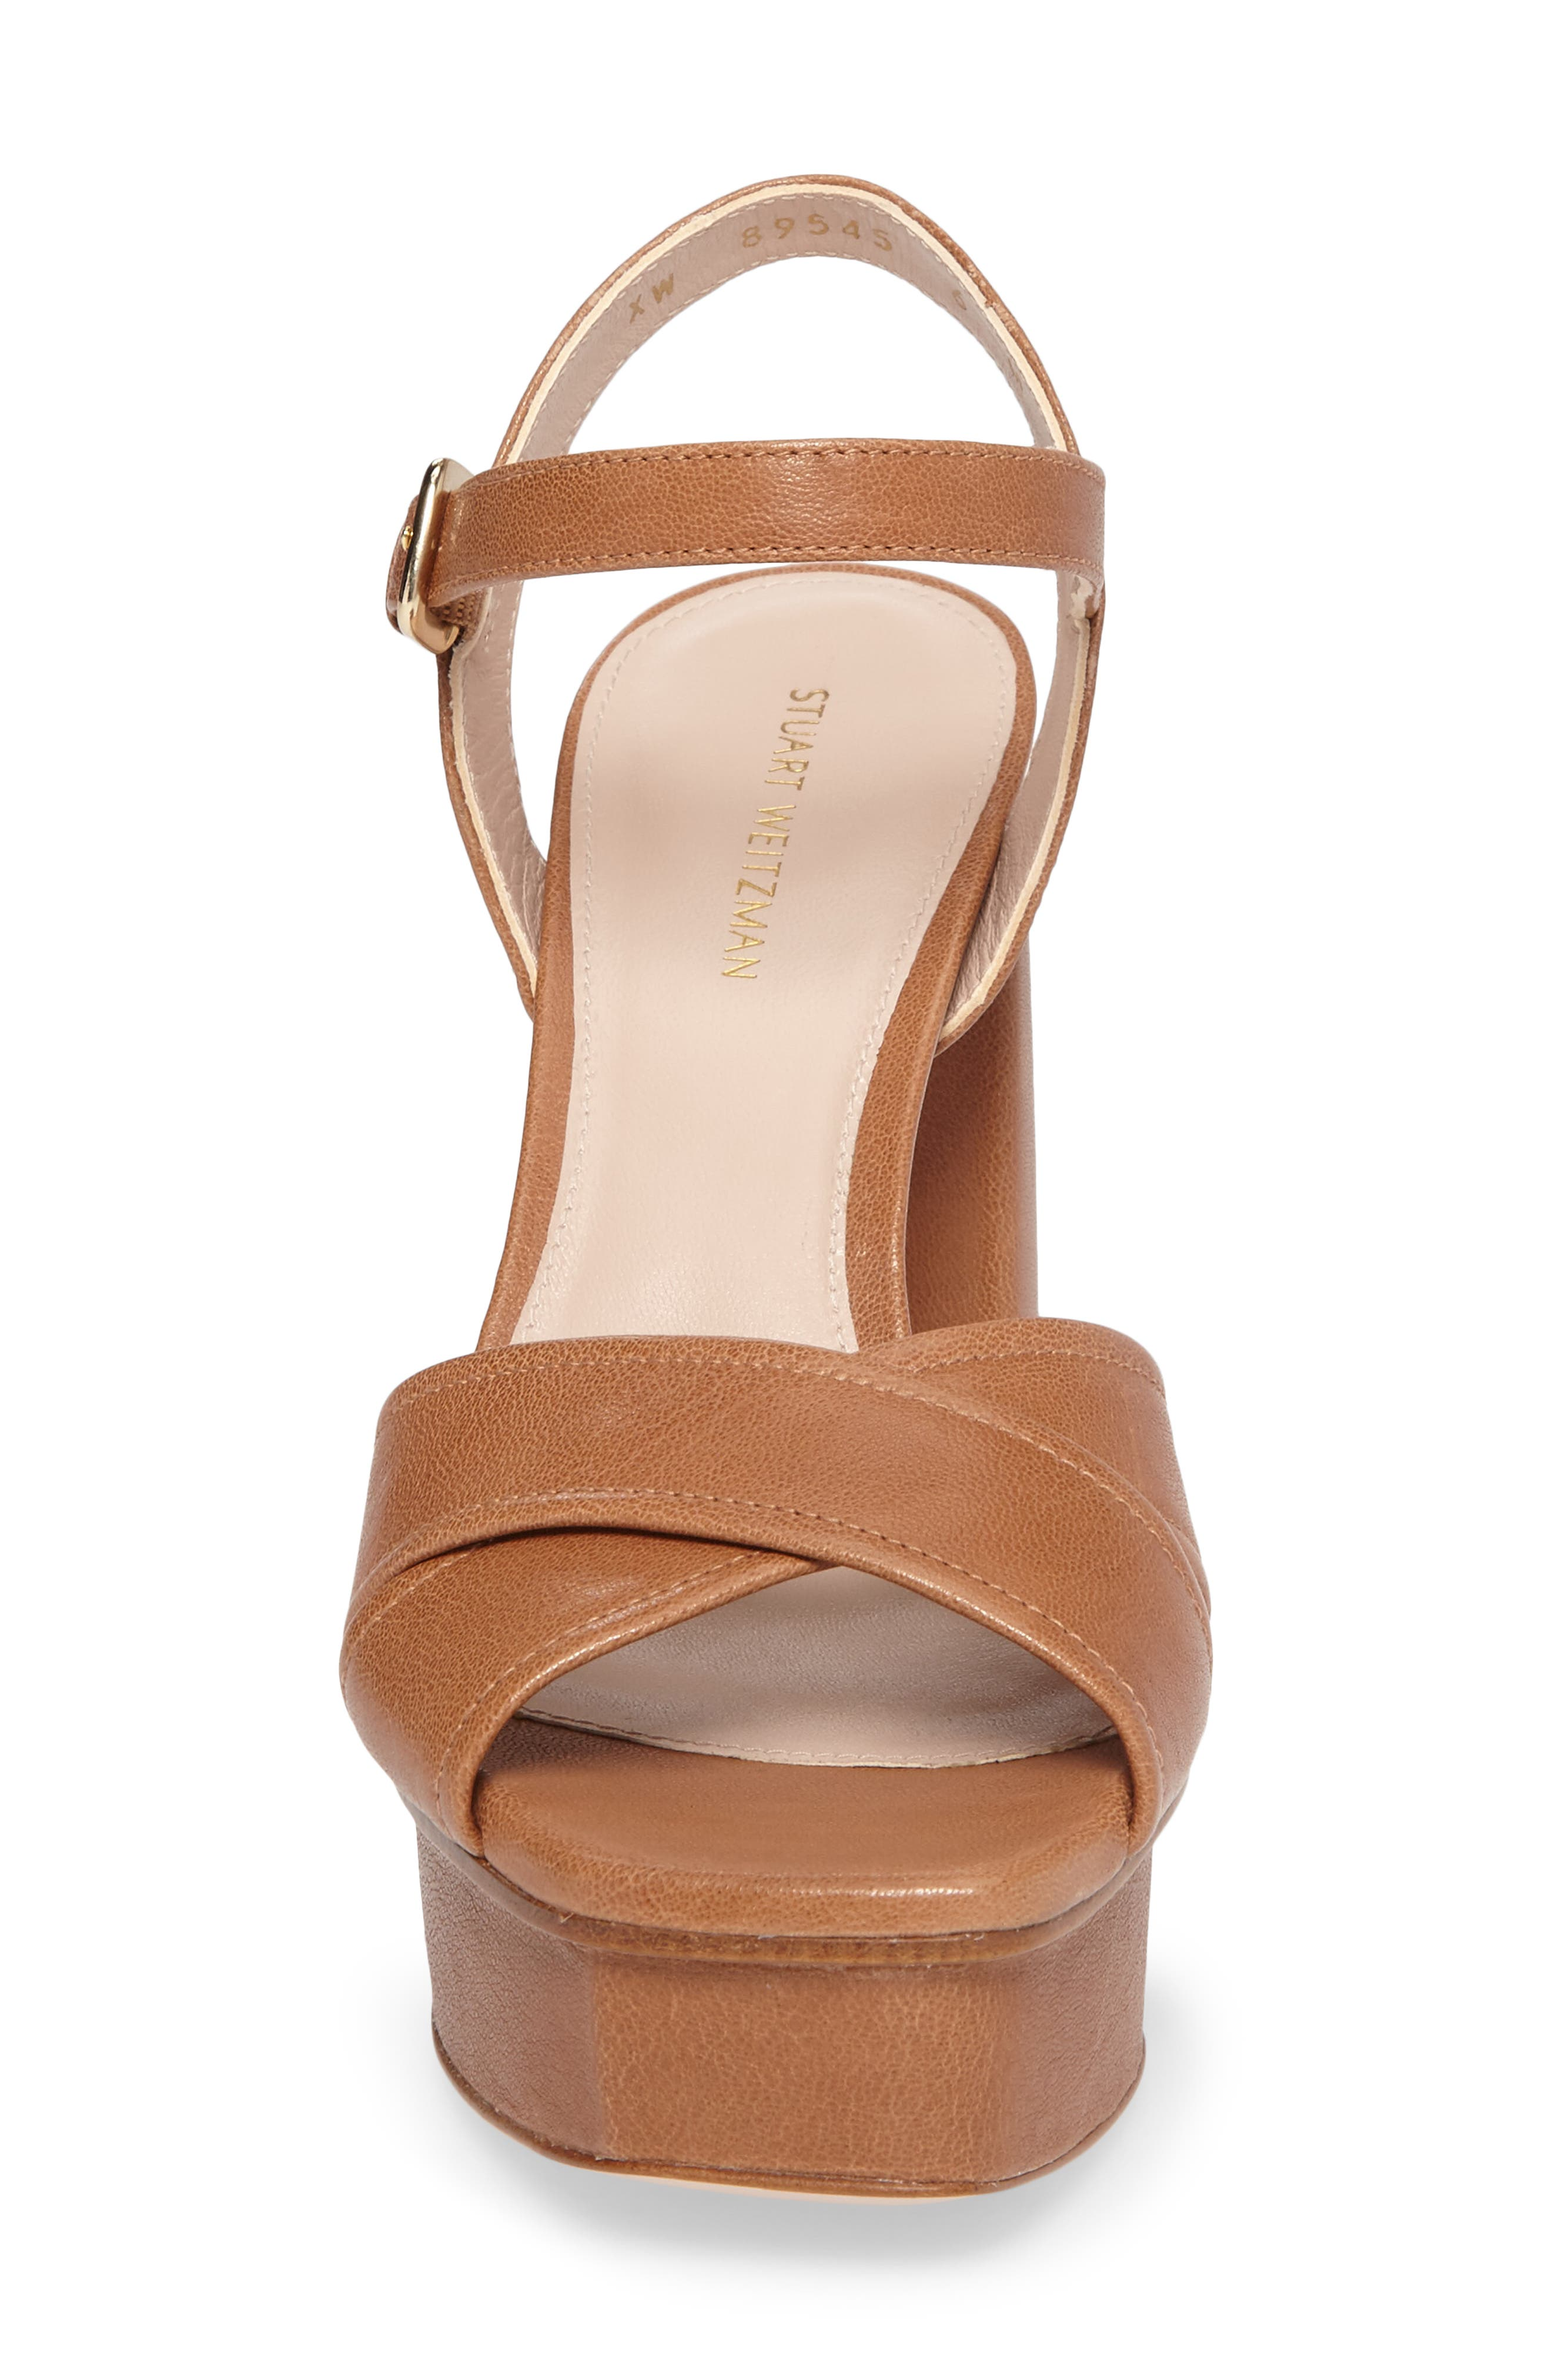 Exposed Platform Sandal,                             Alternate thumbnail 19, color,